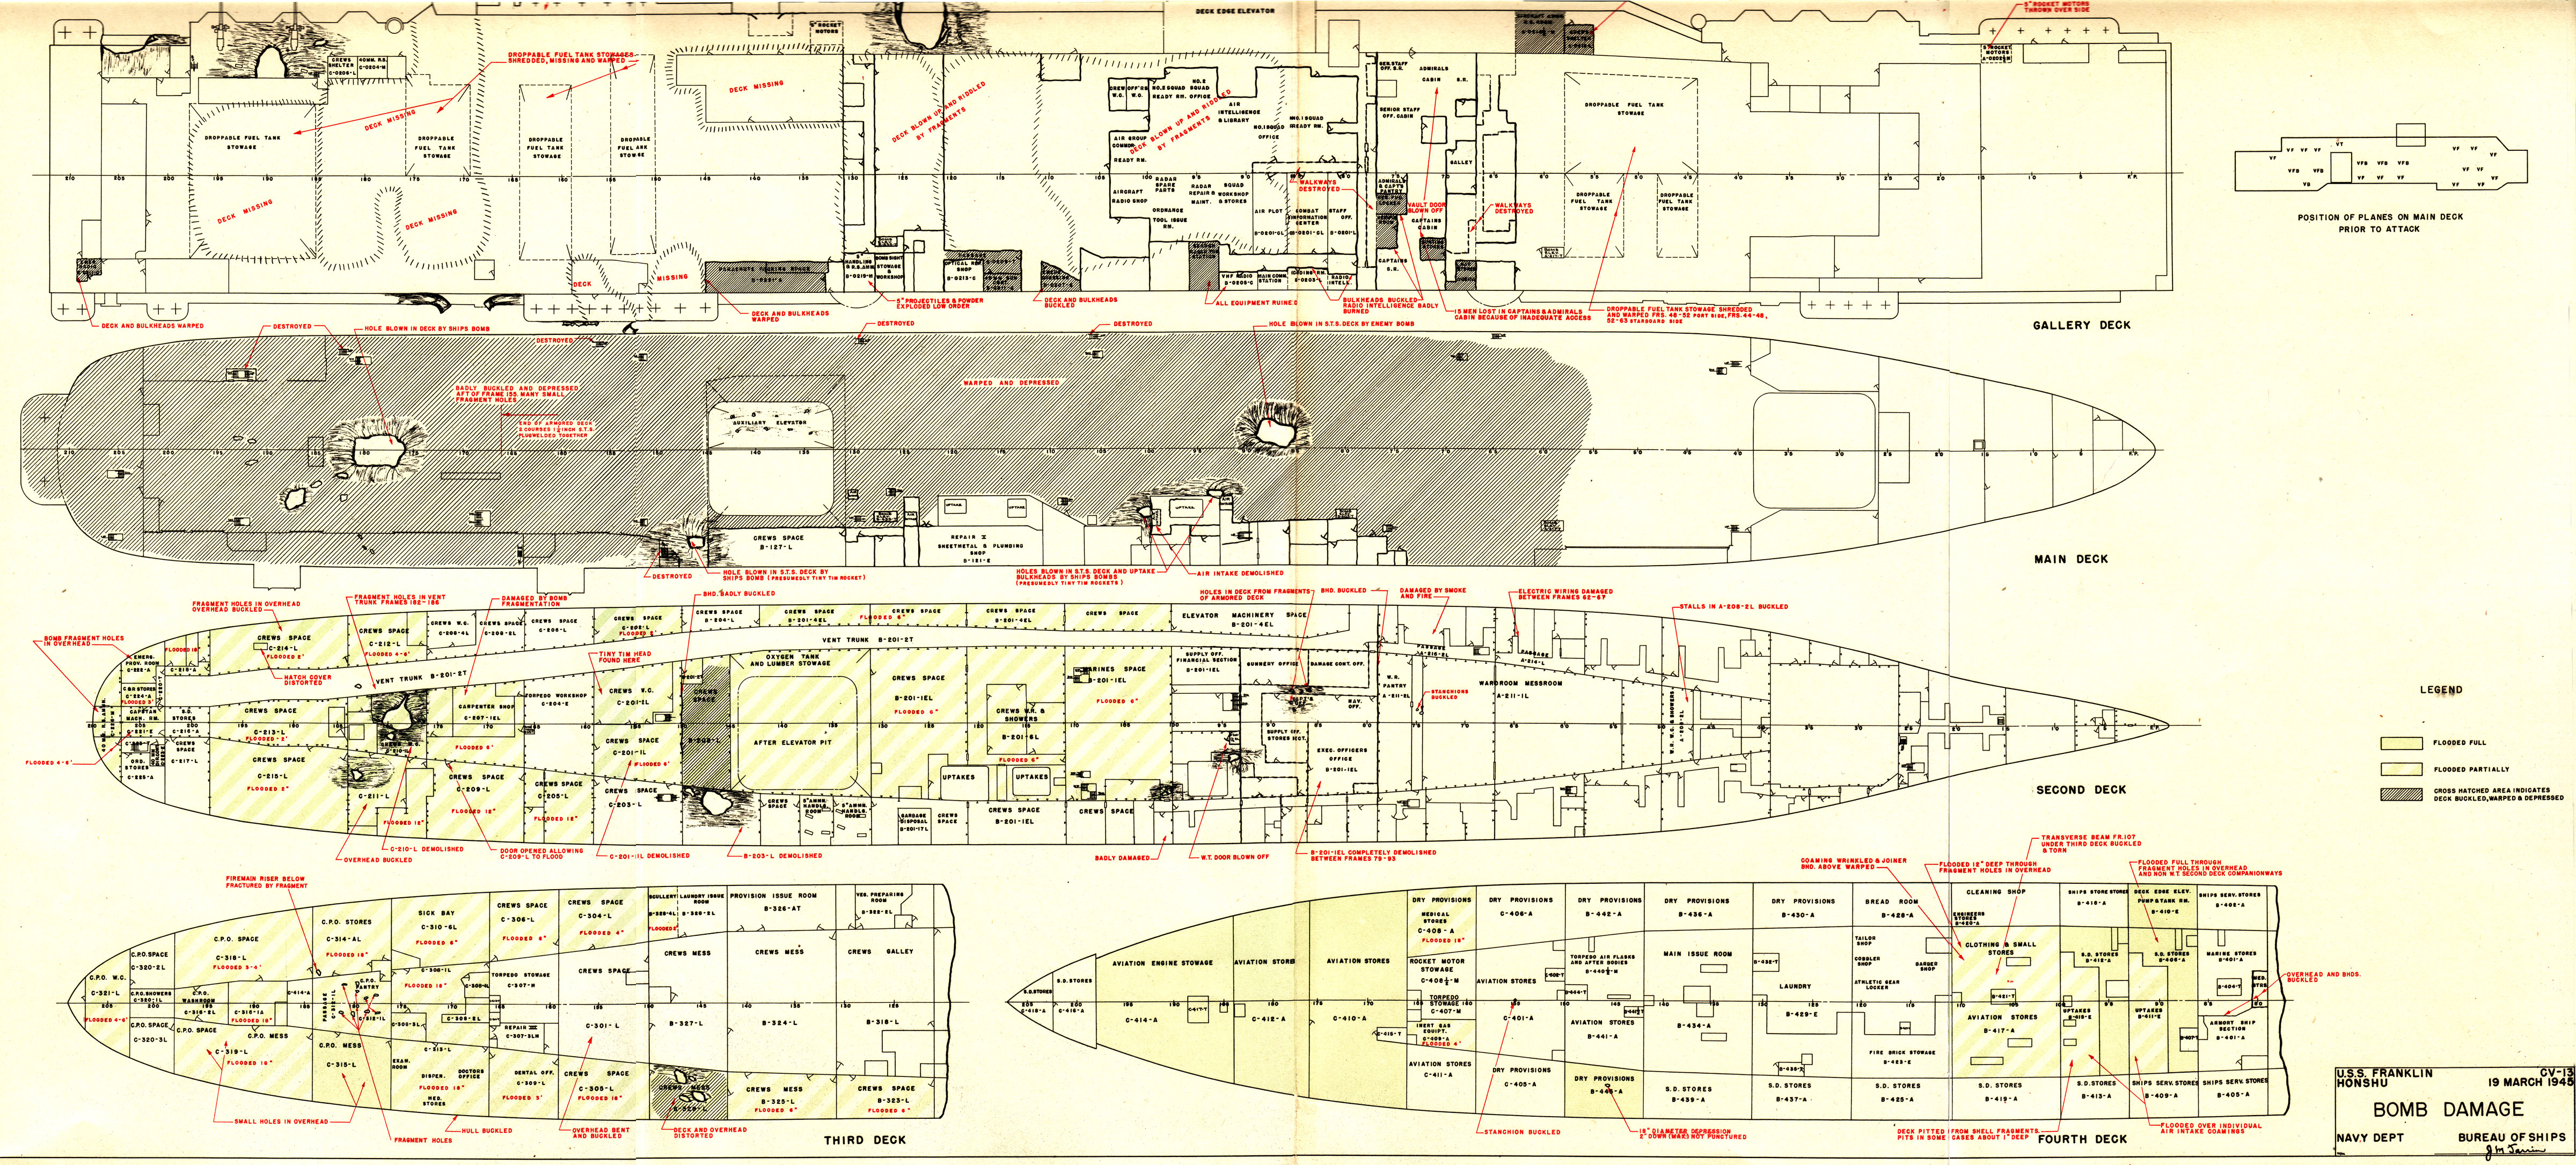 aircraft carrier schematic with Index on Stern besides Index additionally What Does  posite Panels On A Frame Mean furthermore Mig 29k together with P 38 Lightning Schematic.